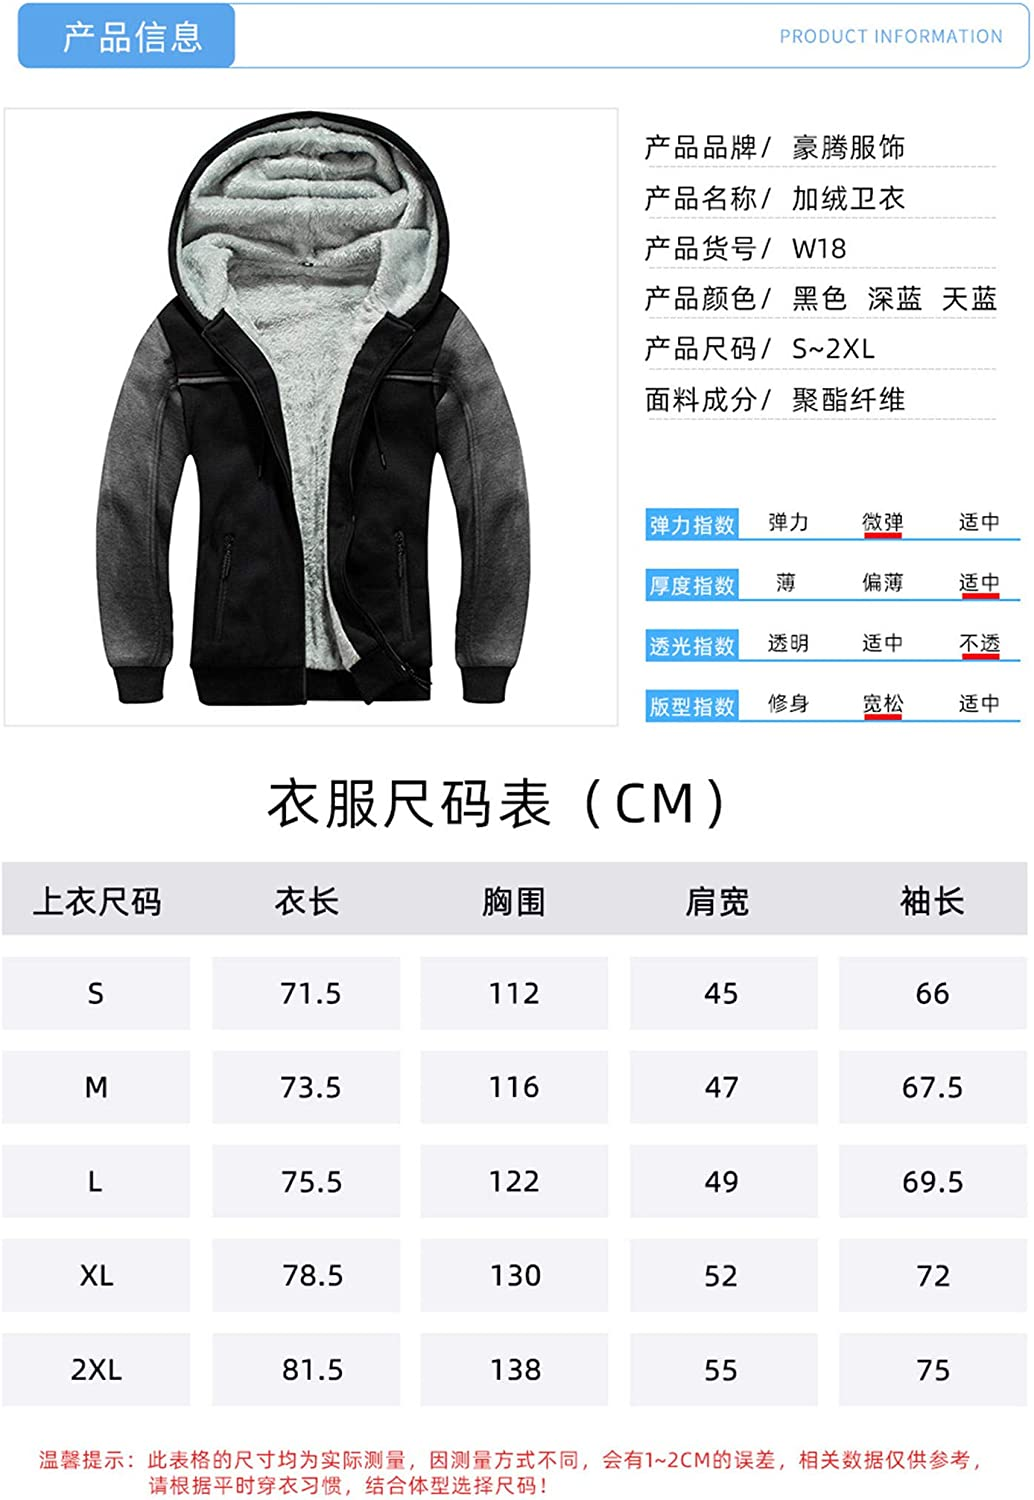 2020 Clearance Men's Pullover Winter Workout Fleece Hoodie Jackets Full Zip Wool Warm Thick Coats (blue,Small)